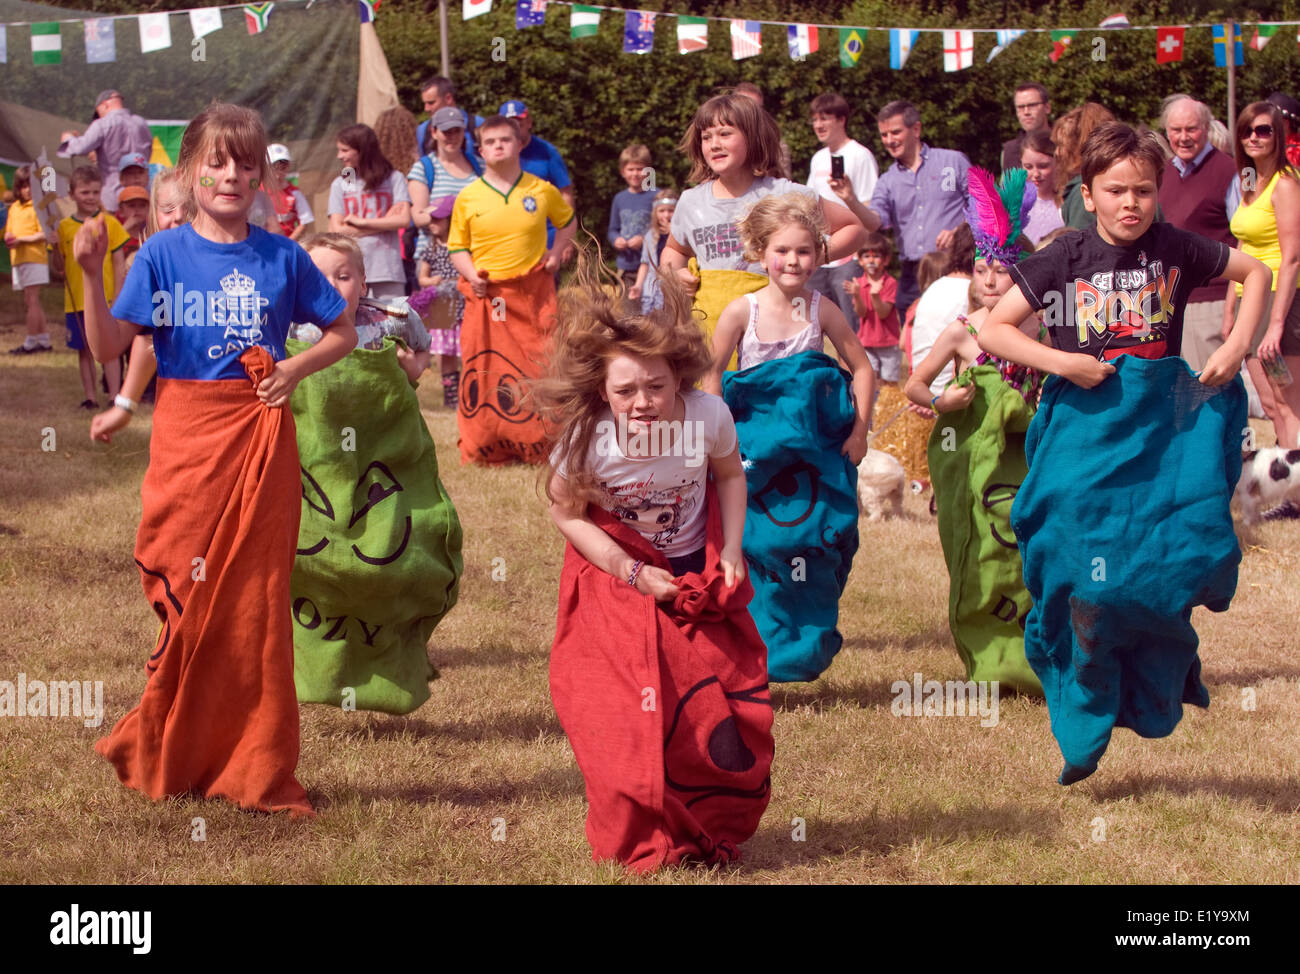 Youngsters competing in a sack race at a village summer fair, Dockenfield, UK. - Stock Image